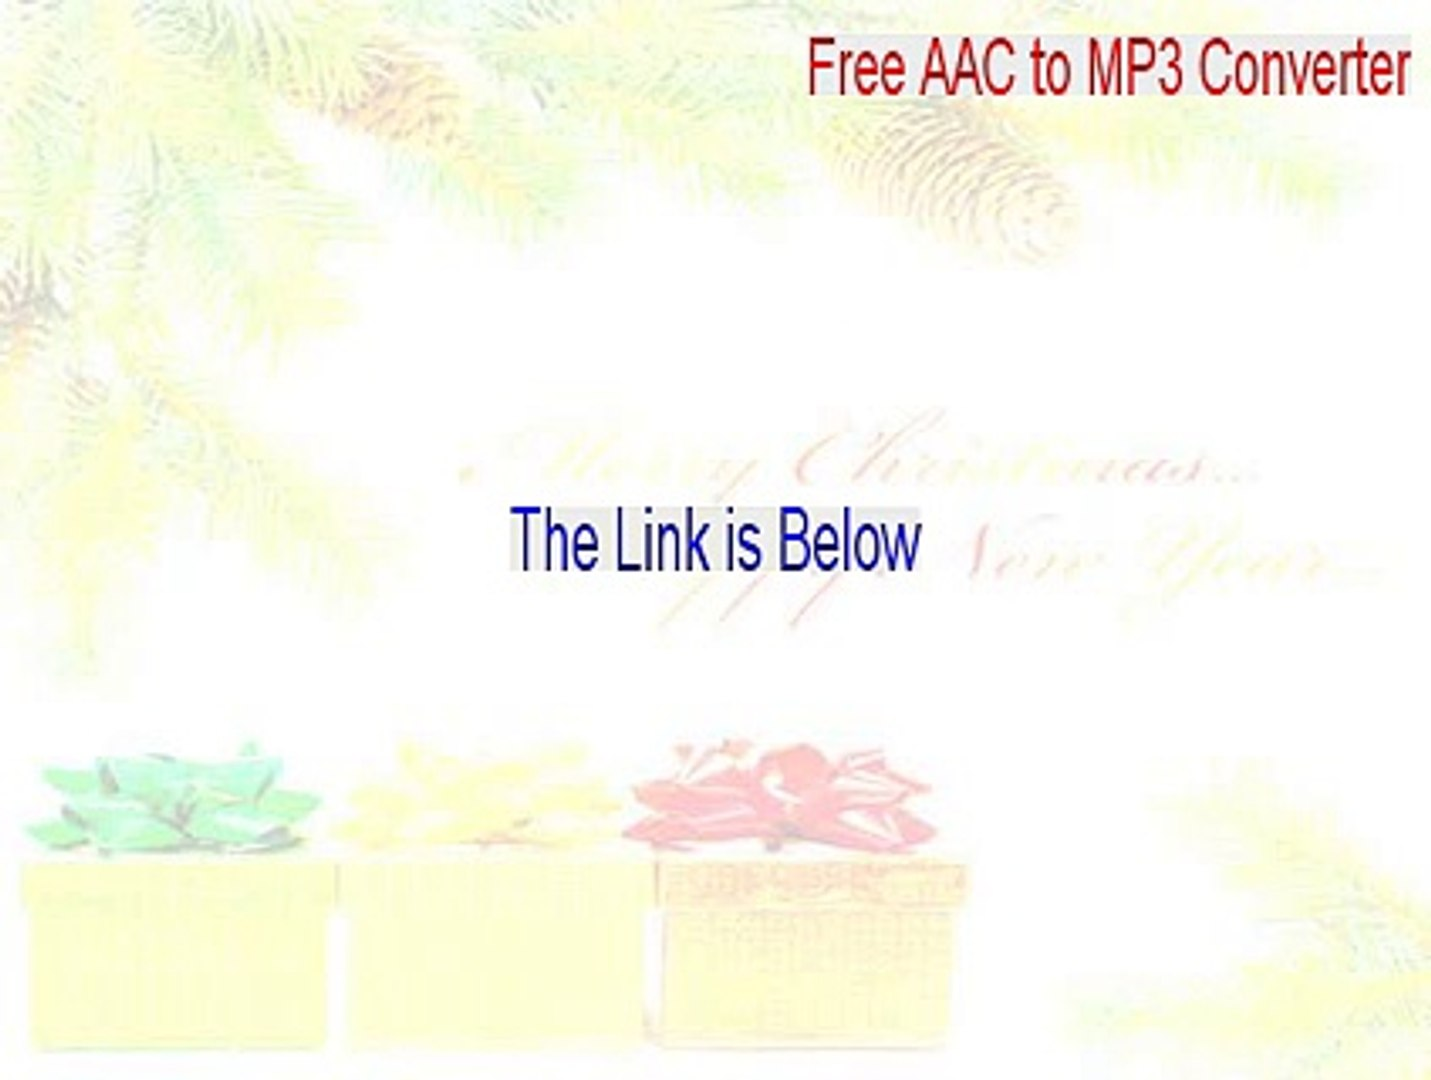 Free AAC to MP3 Converter Crack (free aac to mp3 converter full 2015)